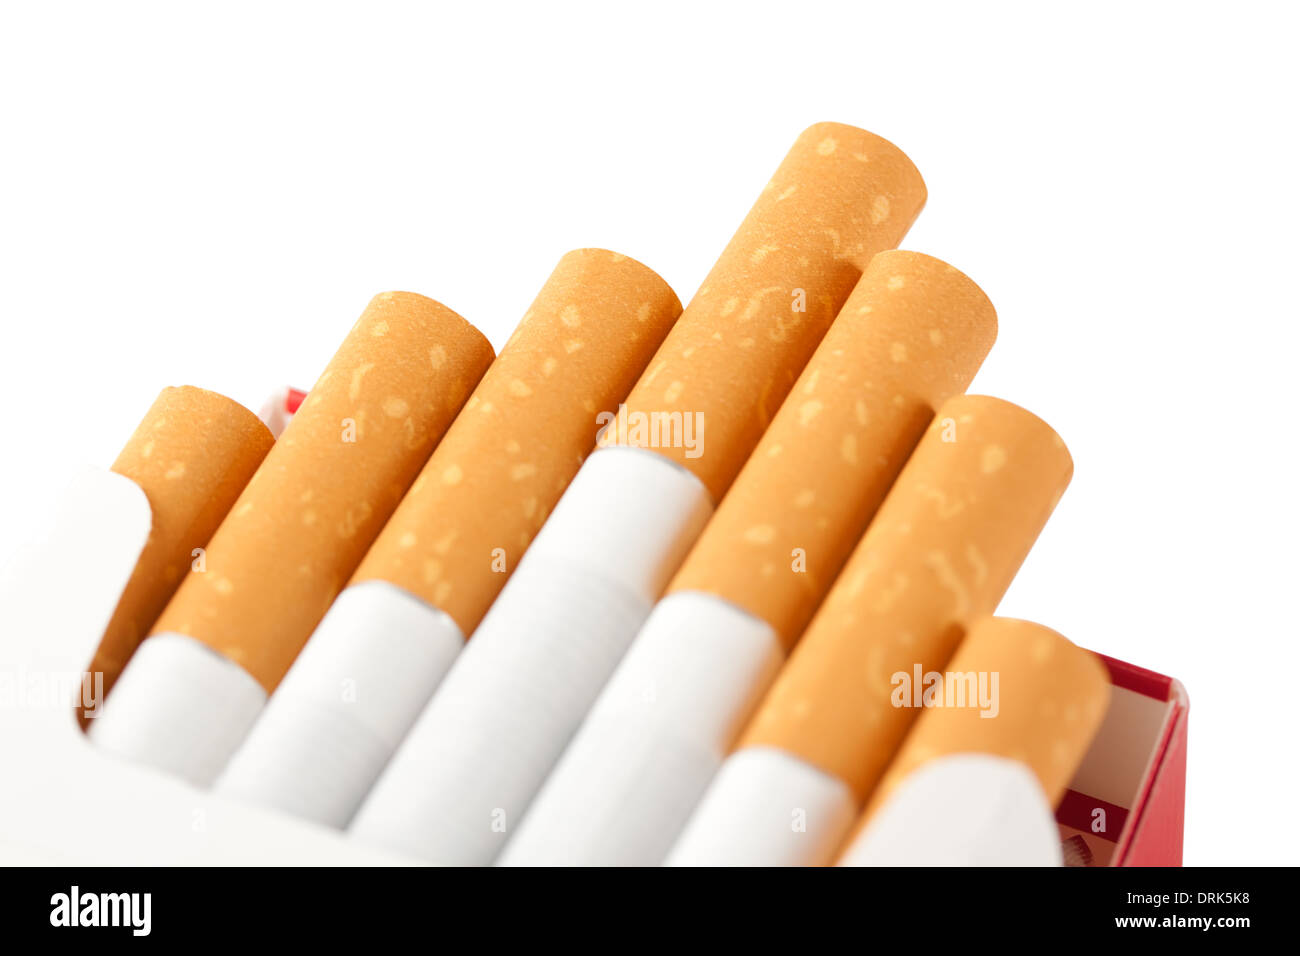 What is in a Gauloises light cigarettes